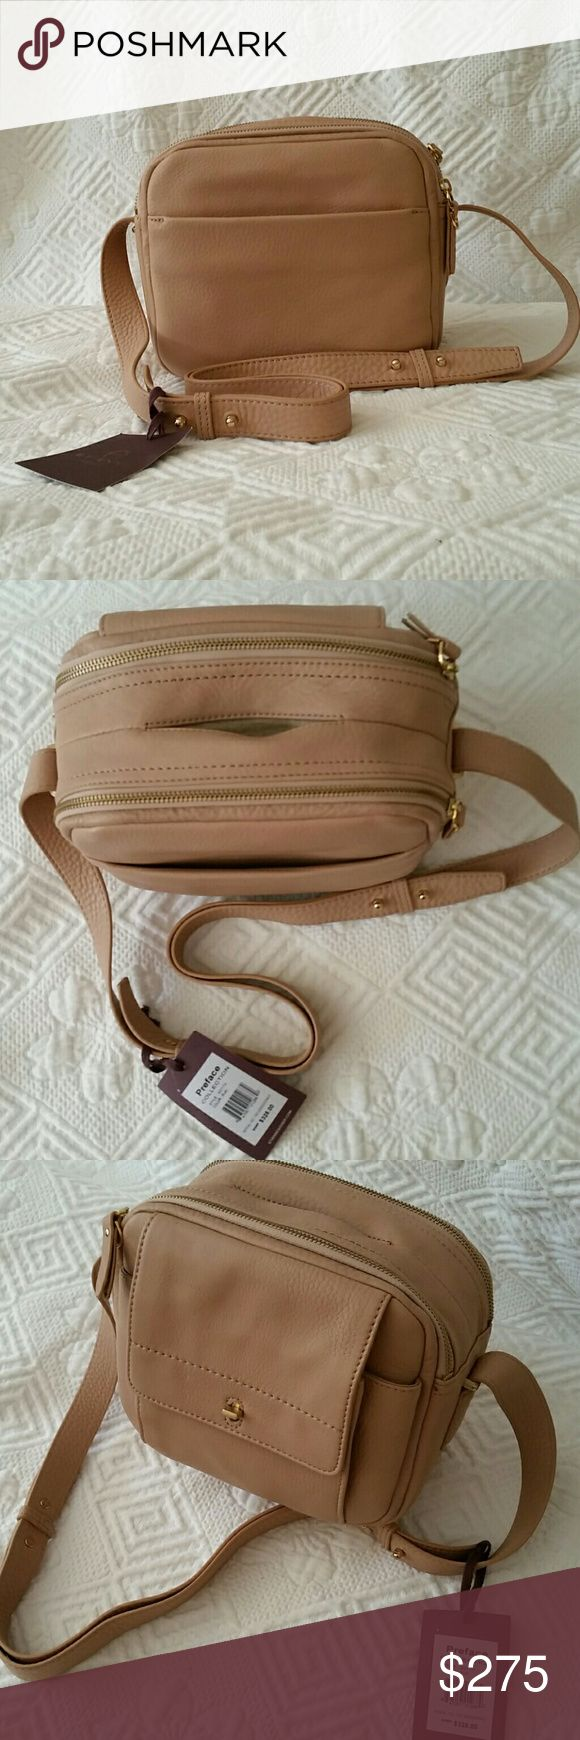 Aigner Preface Leather Handbag Aigner Preface Collection gorgeous leather handbag,with a slit in between the two zippers for your cellphone. No more opening your purse for your  phone. Strap length 16in. Very roomy bag. Aigner Preface Collection  Bags Shoulder Bags